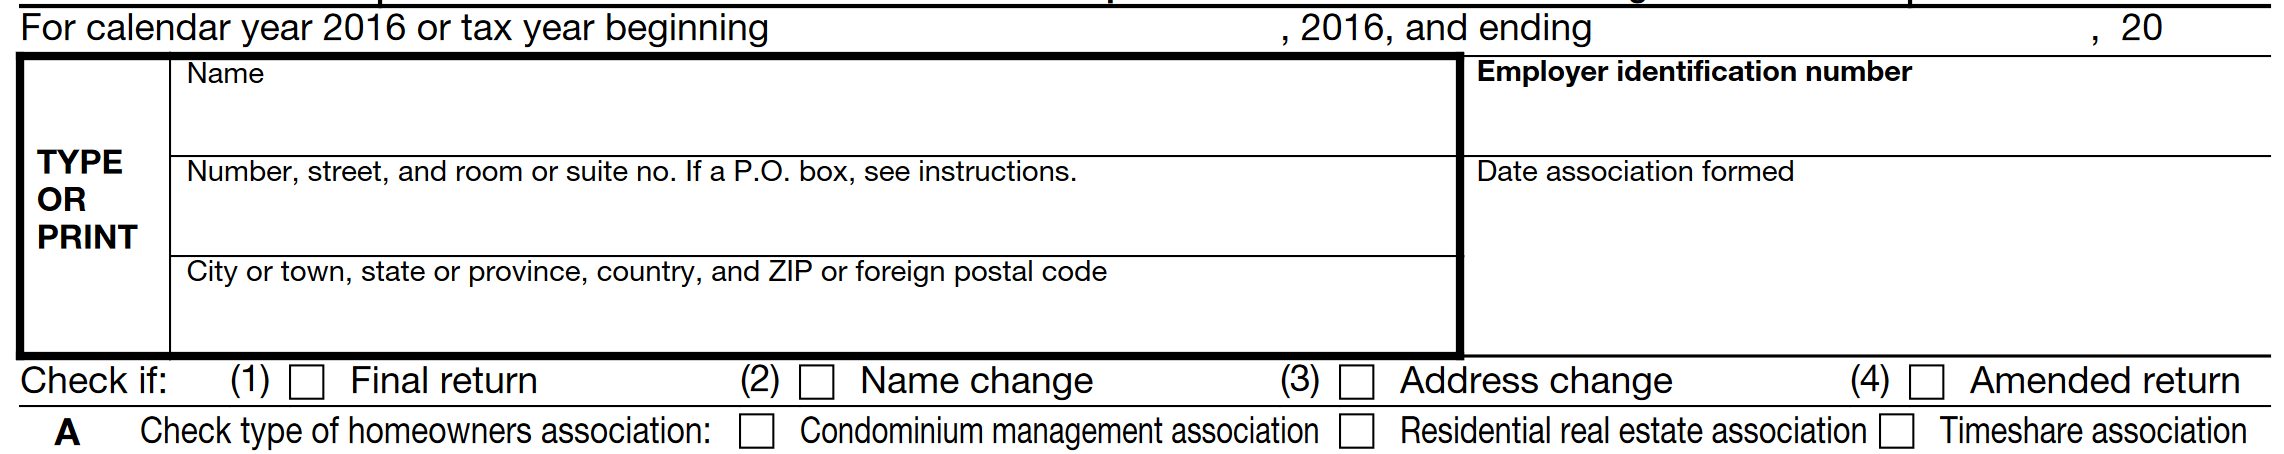 Form 1120-H Example